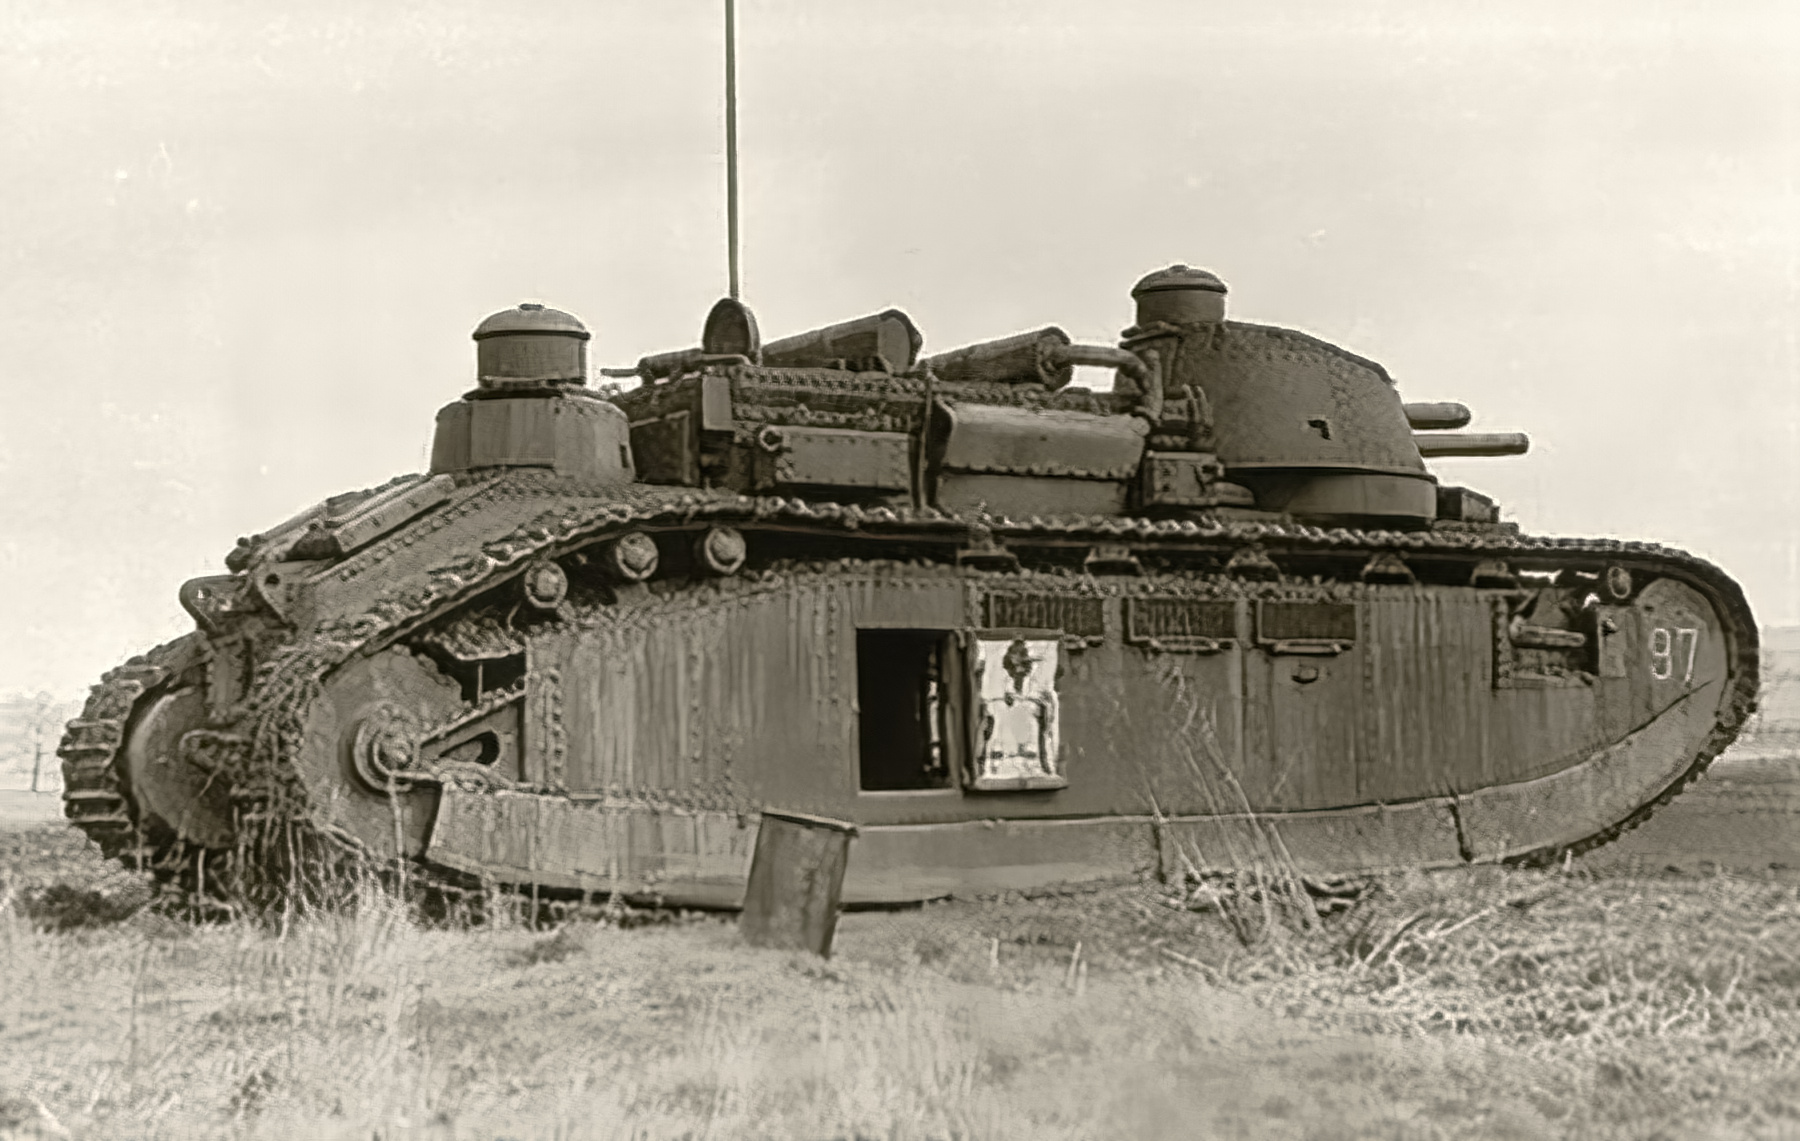 French Army Char 2C or FCM 2C was a heavy tank used during battle of France 1940 ebay 01